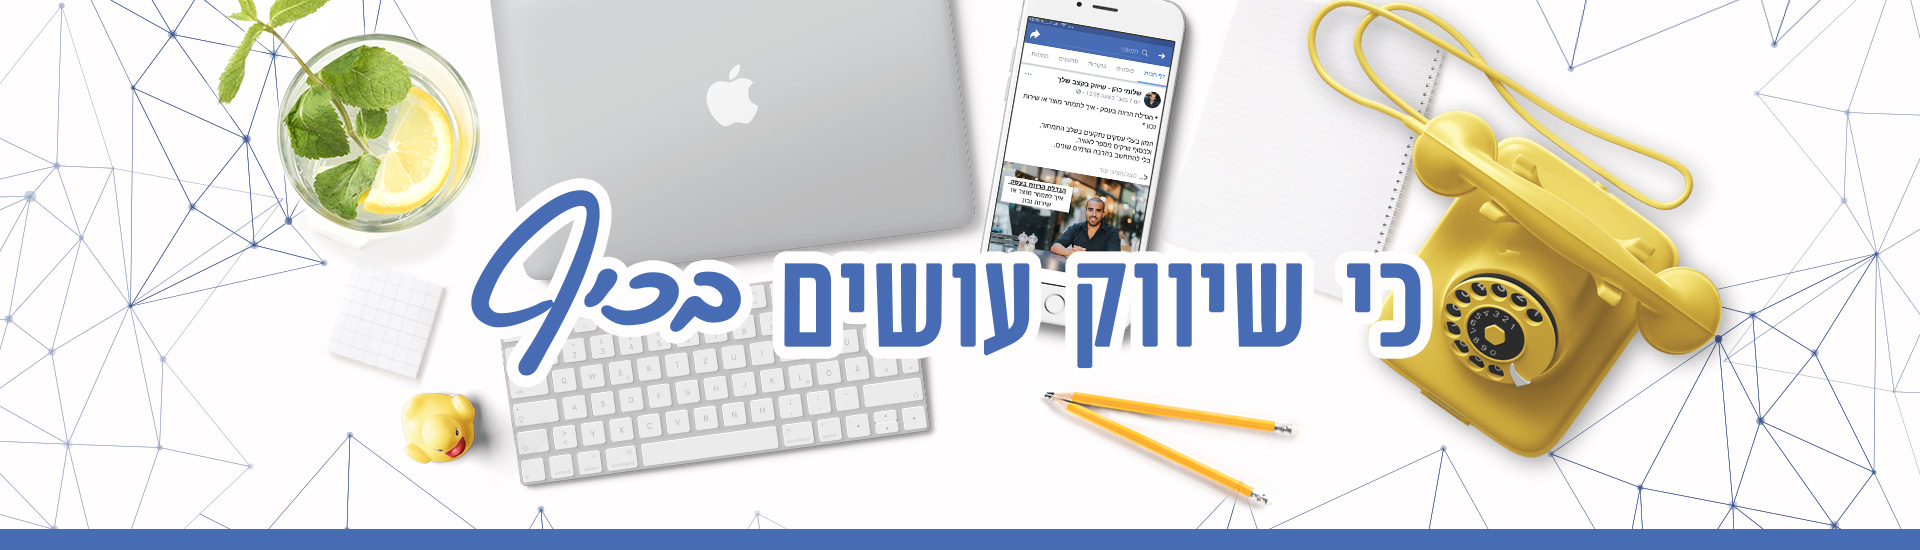 cover_shlomi_pc